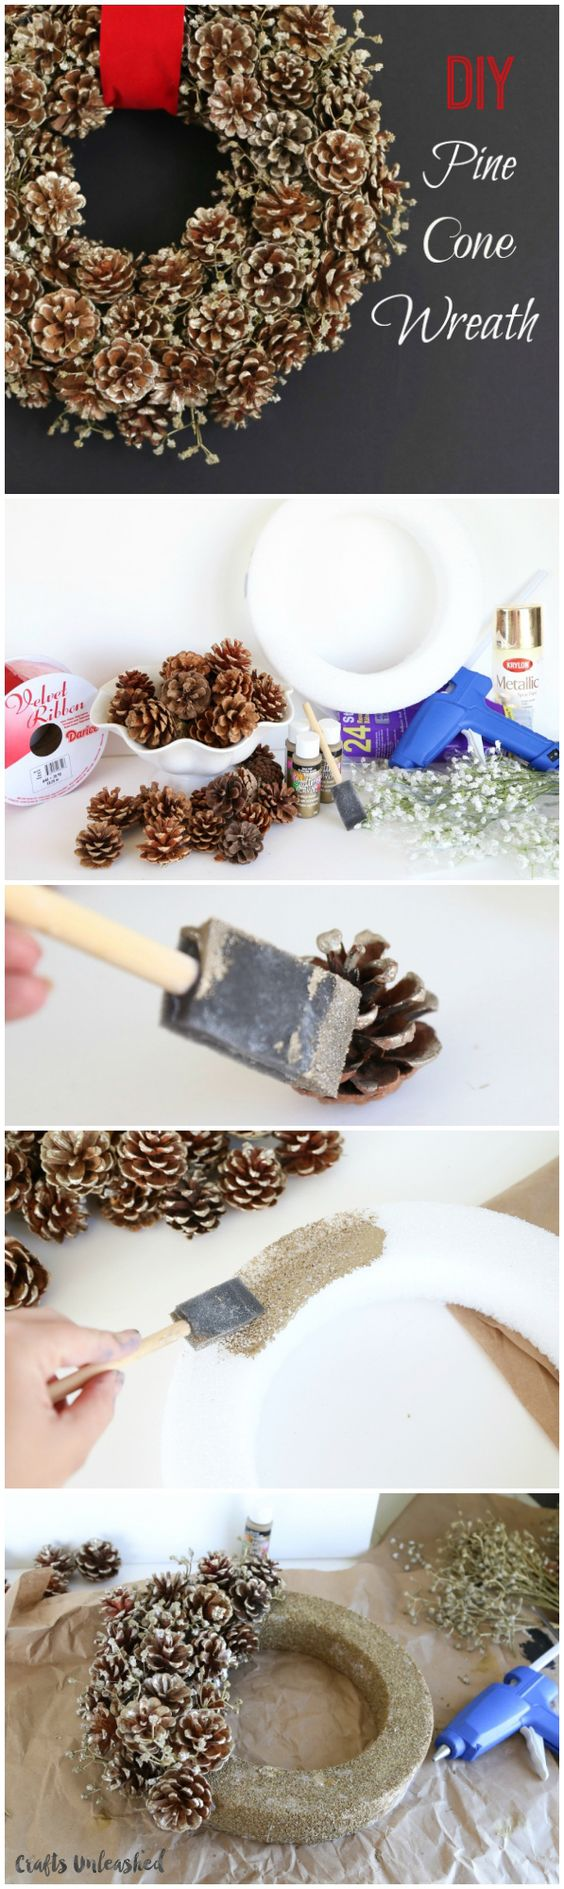 Perfect for Christmas and fitting for the whole winter season, check out this pine cone wreath DIY tutorial for a dazzling decor piece this holiday season.: